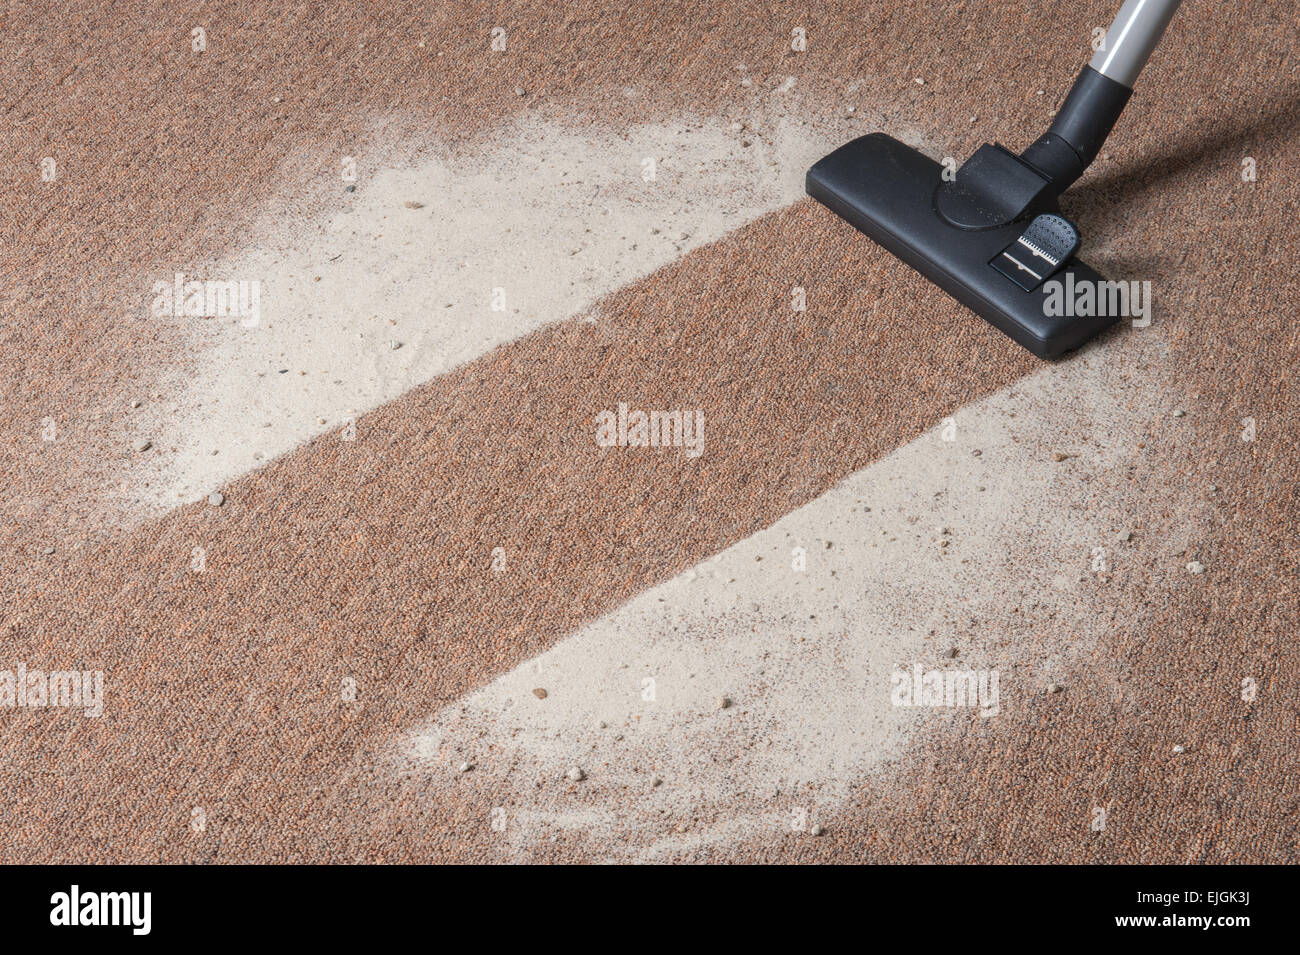 Vacuum cleaning dirt on a carpet floor - Stock Image